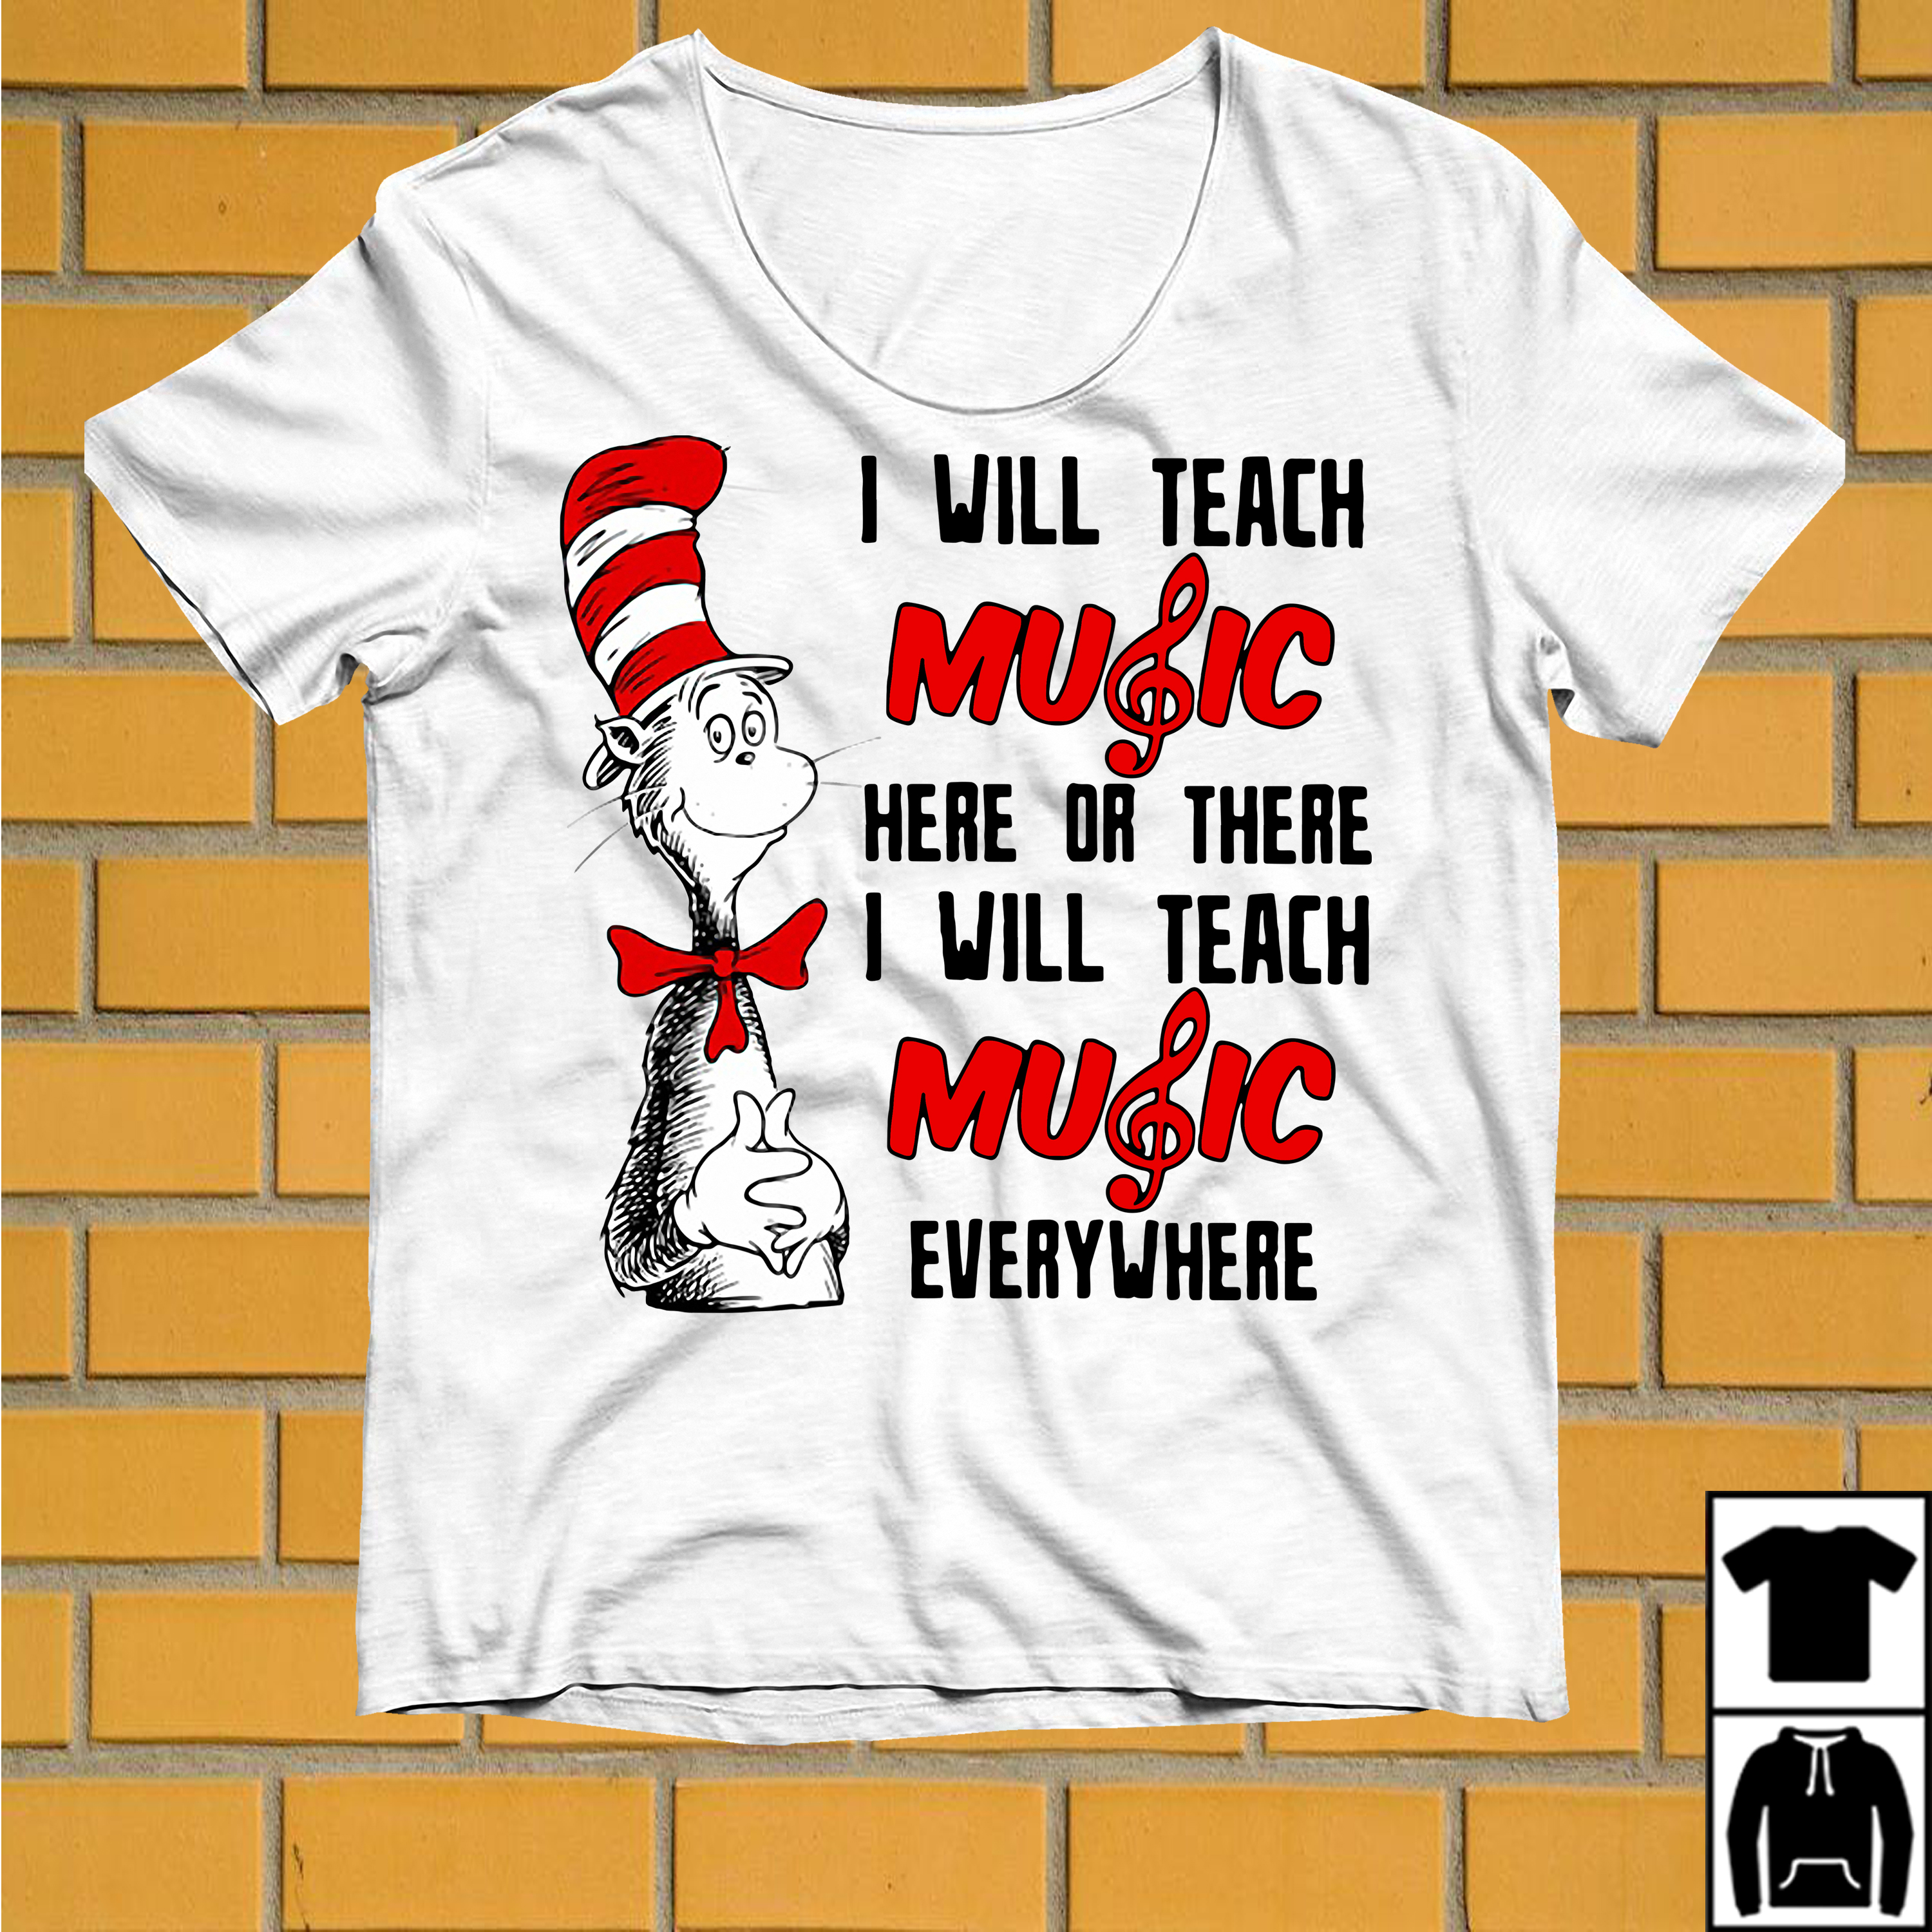 Dr Seuss I will teach music here or there or everywhere shirt